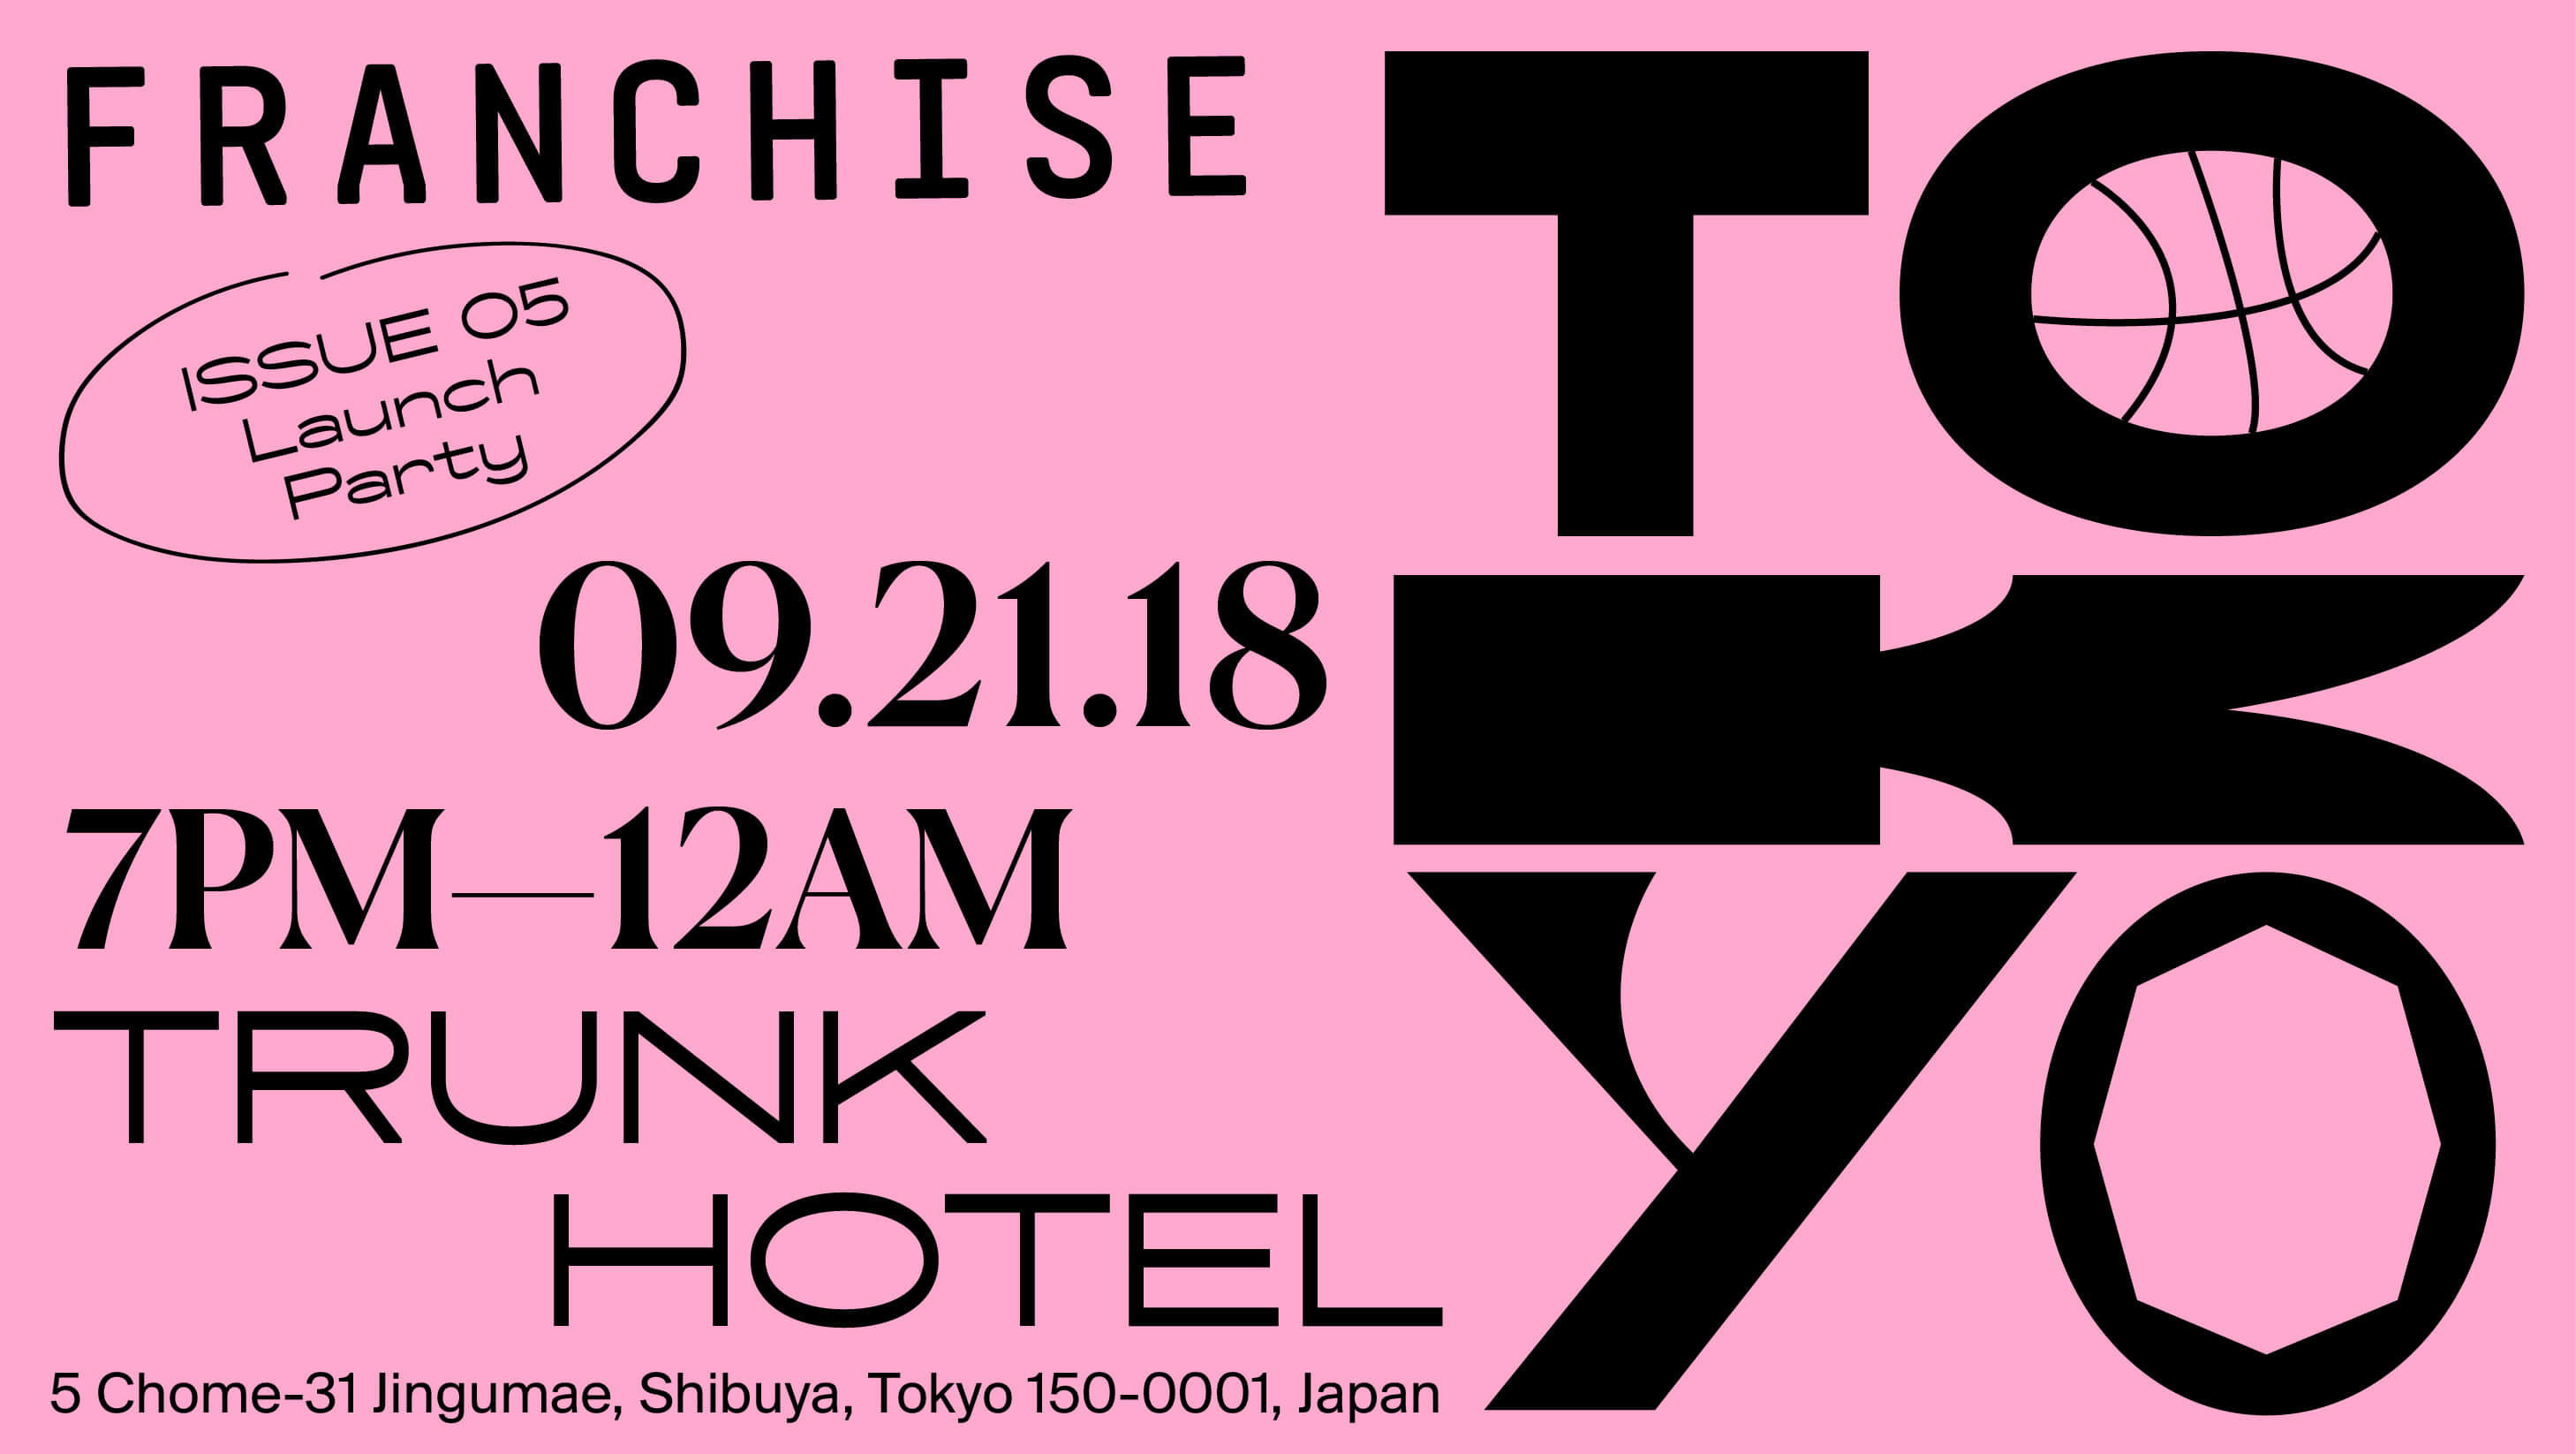 Franchise Issue 5 Tokyo Launch Party